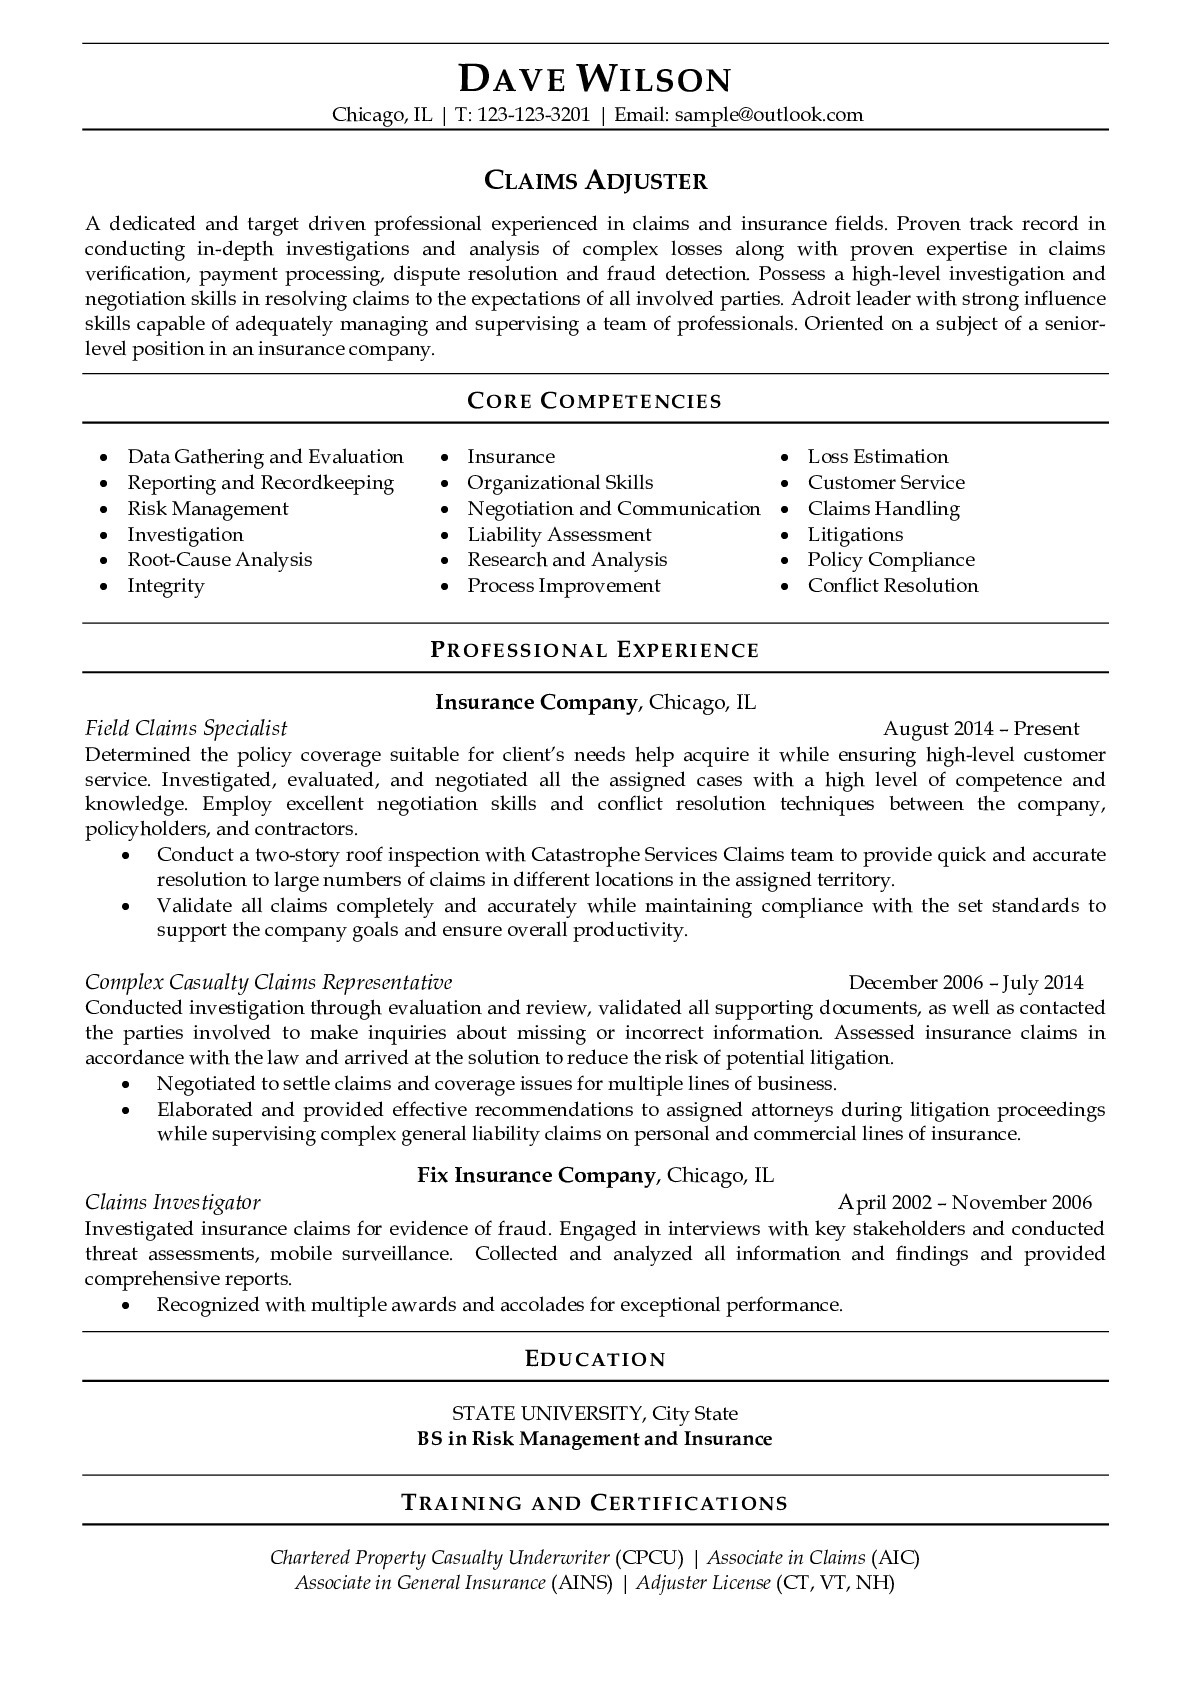 Resume Example for Claims Adjuster